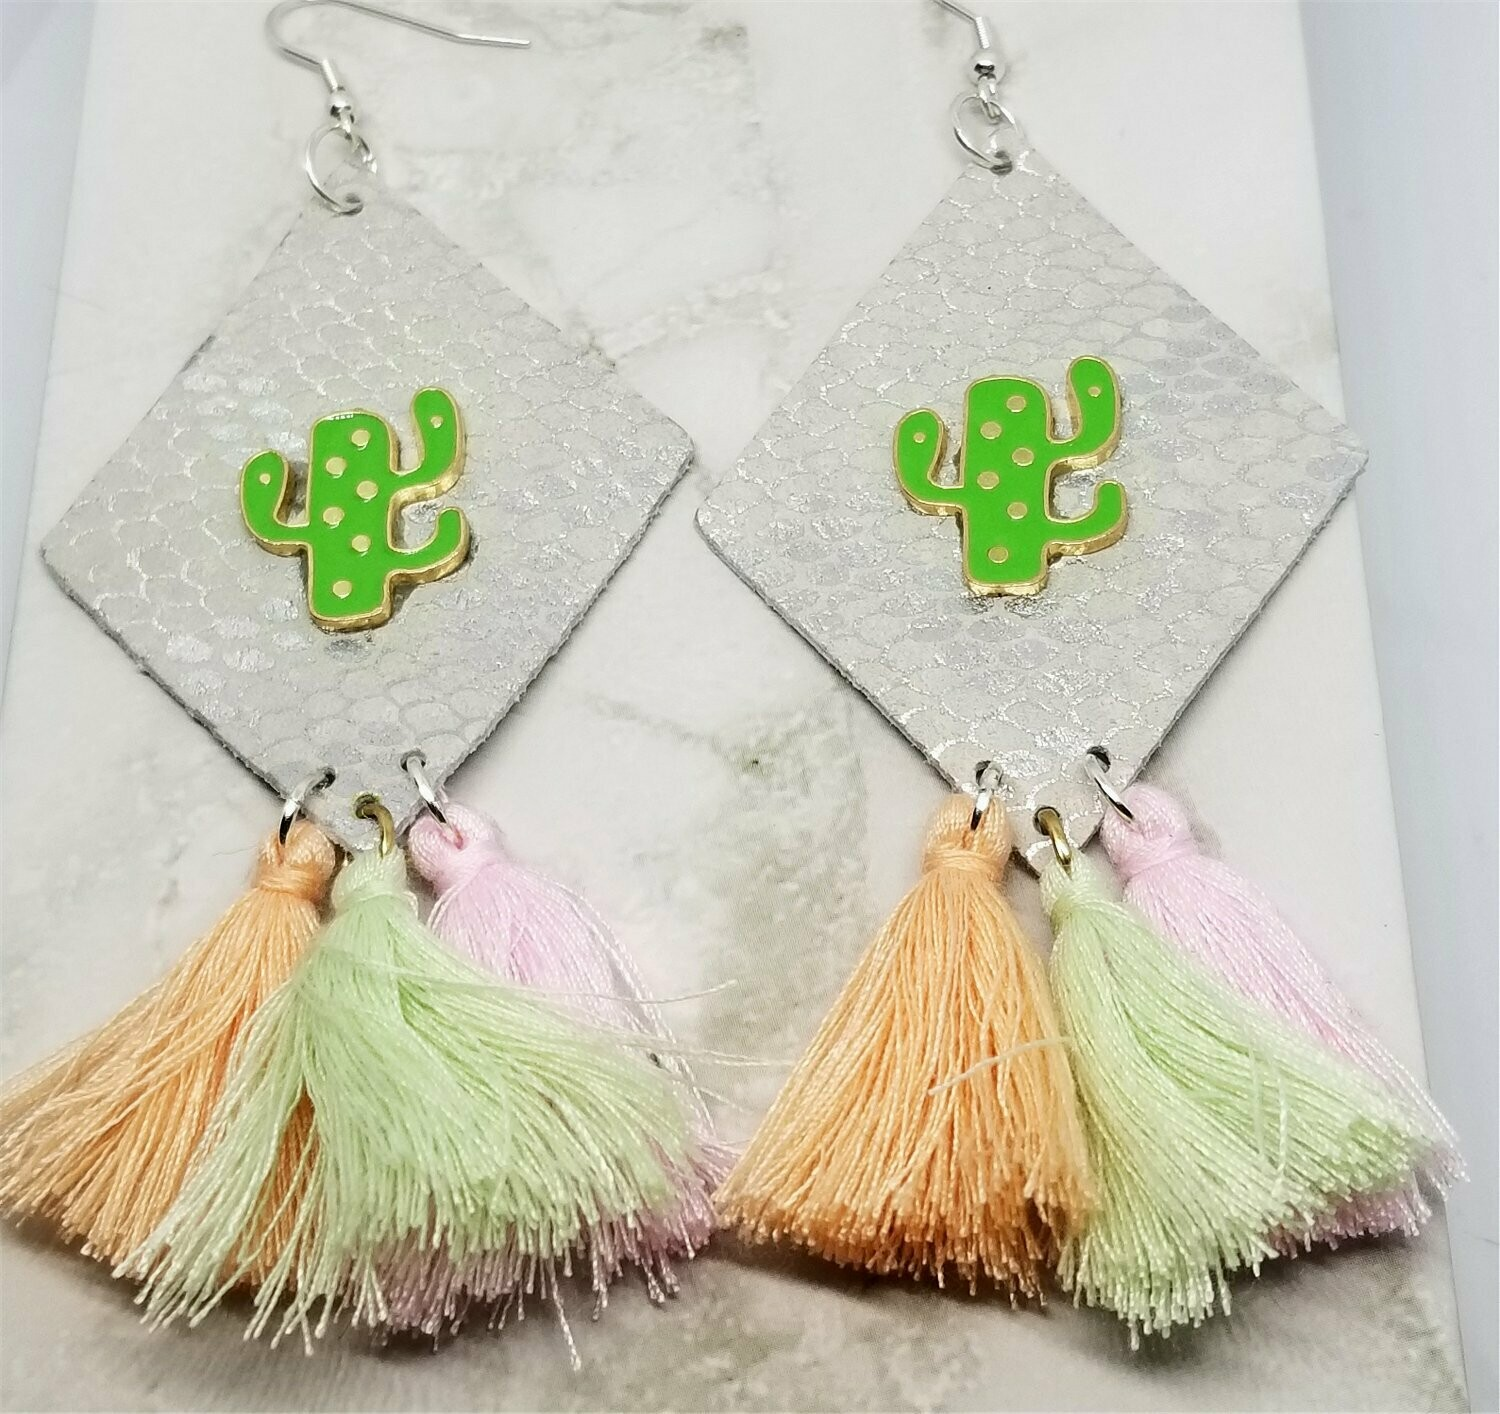 White and Silver Diamond Shaped Real Leather Earrings with String Tassels and a Metal Cactus Embellishment